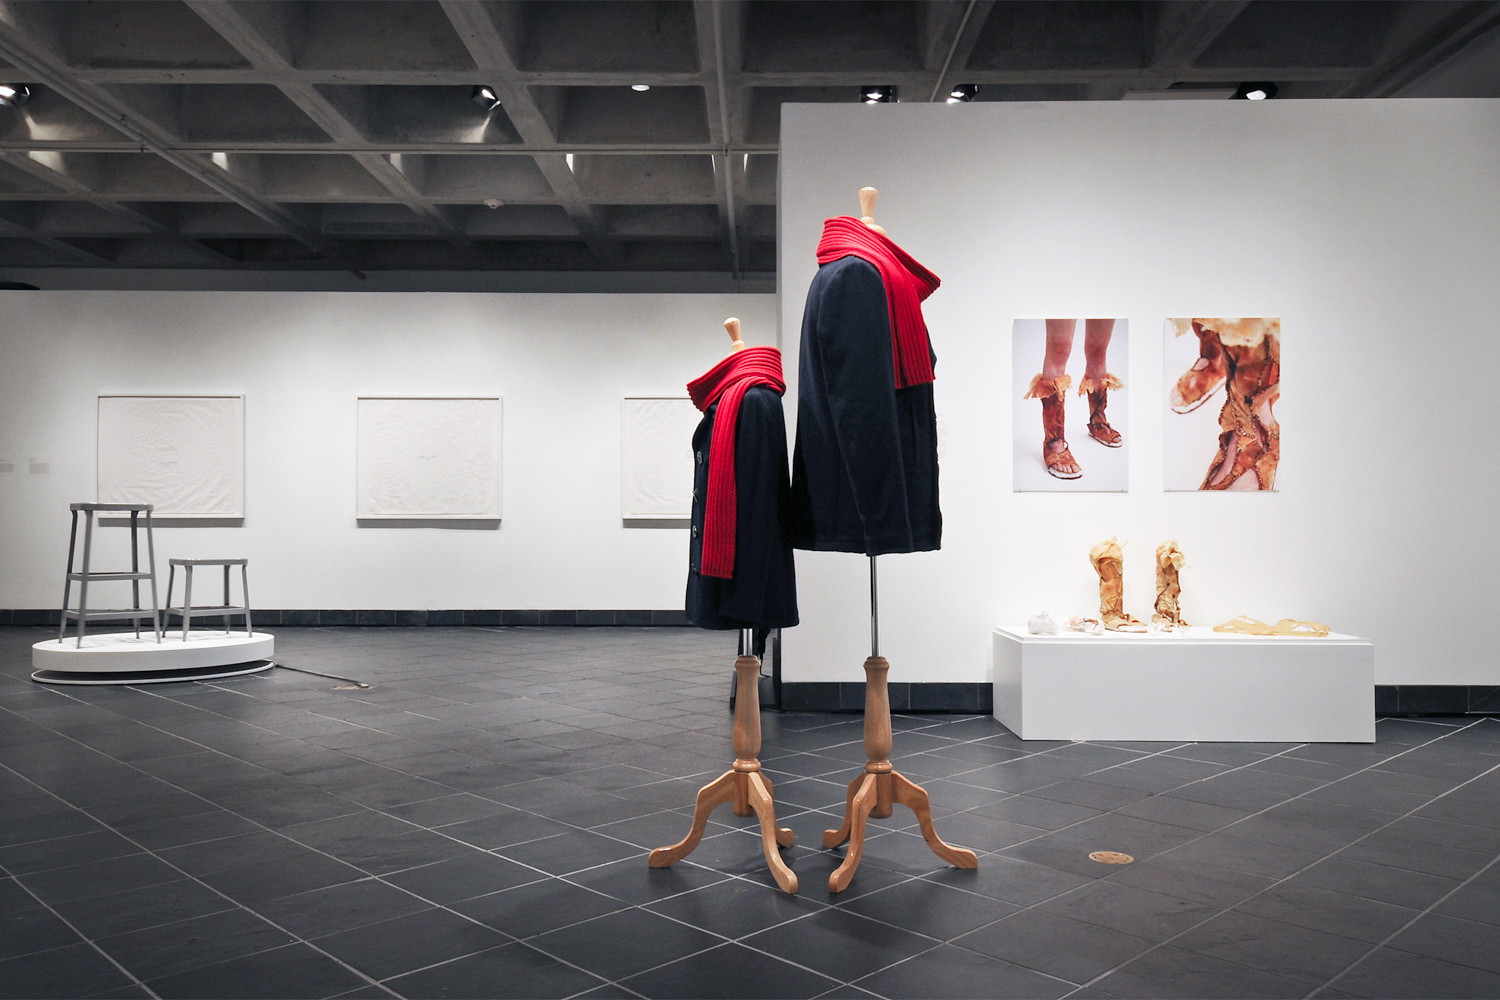 Installation view at Cantor Fitzgerald Gallery, 2012